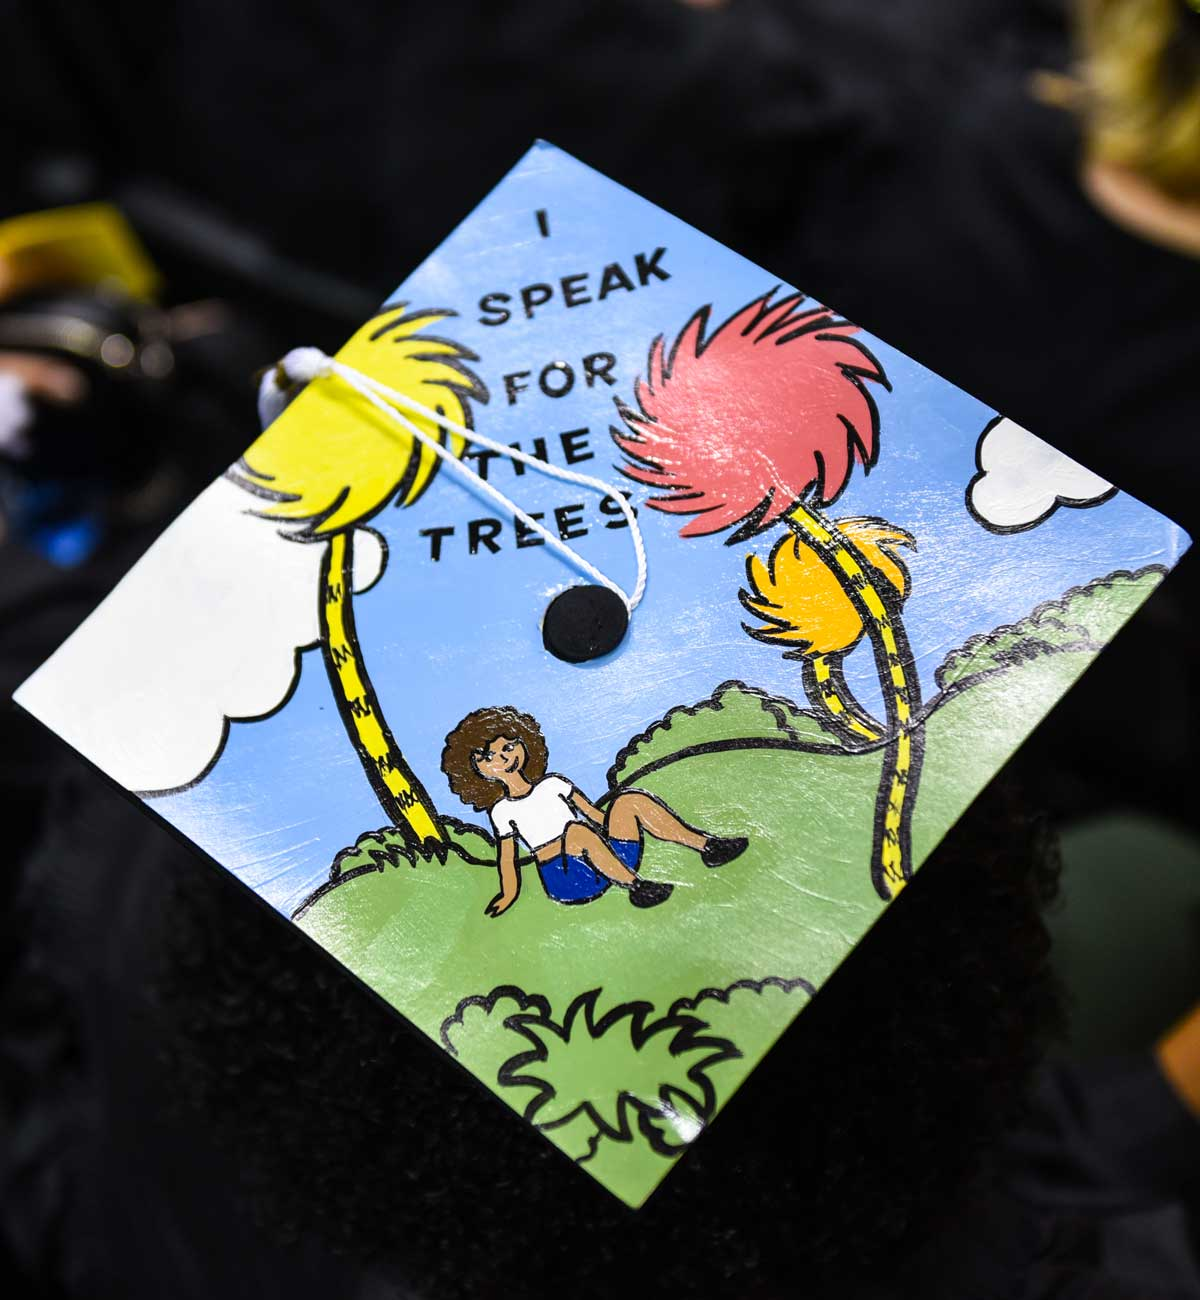 Grad cap decorated with text: I speak for the trees